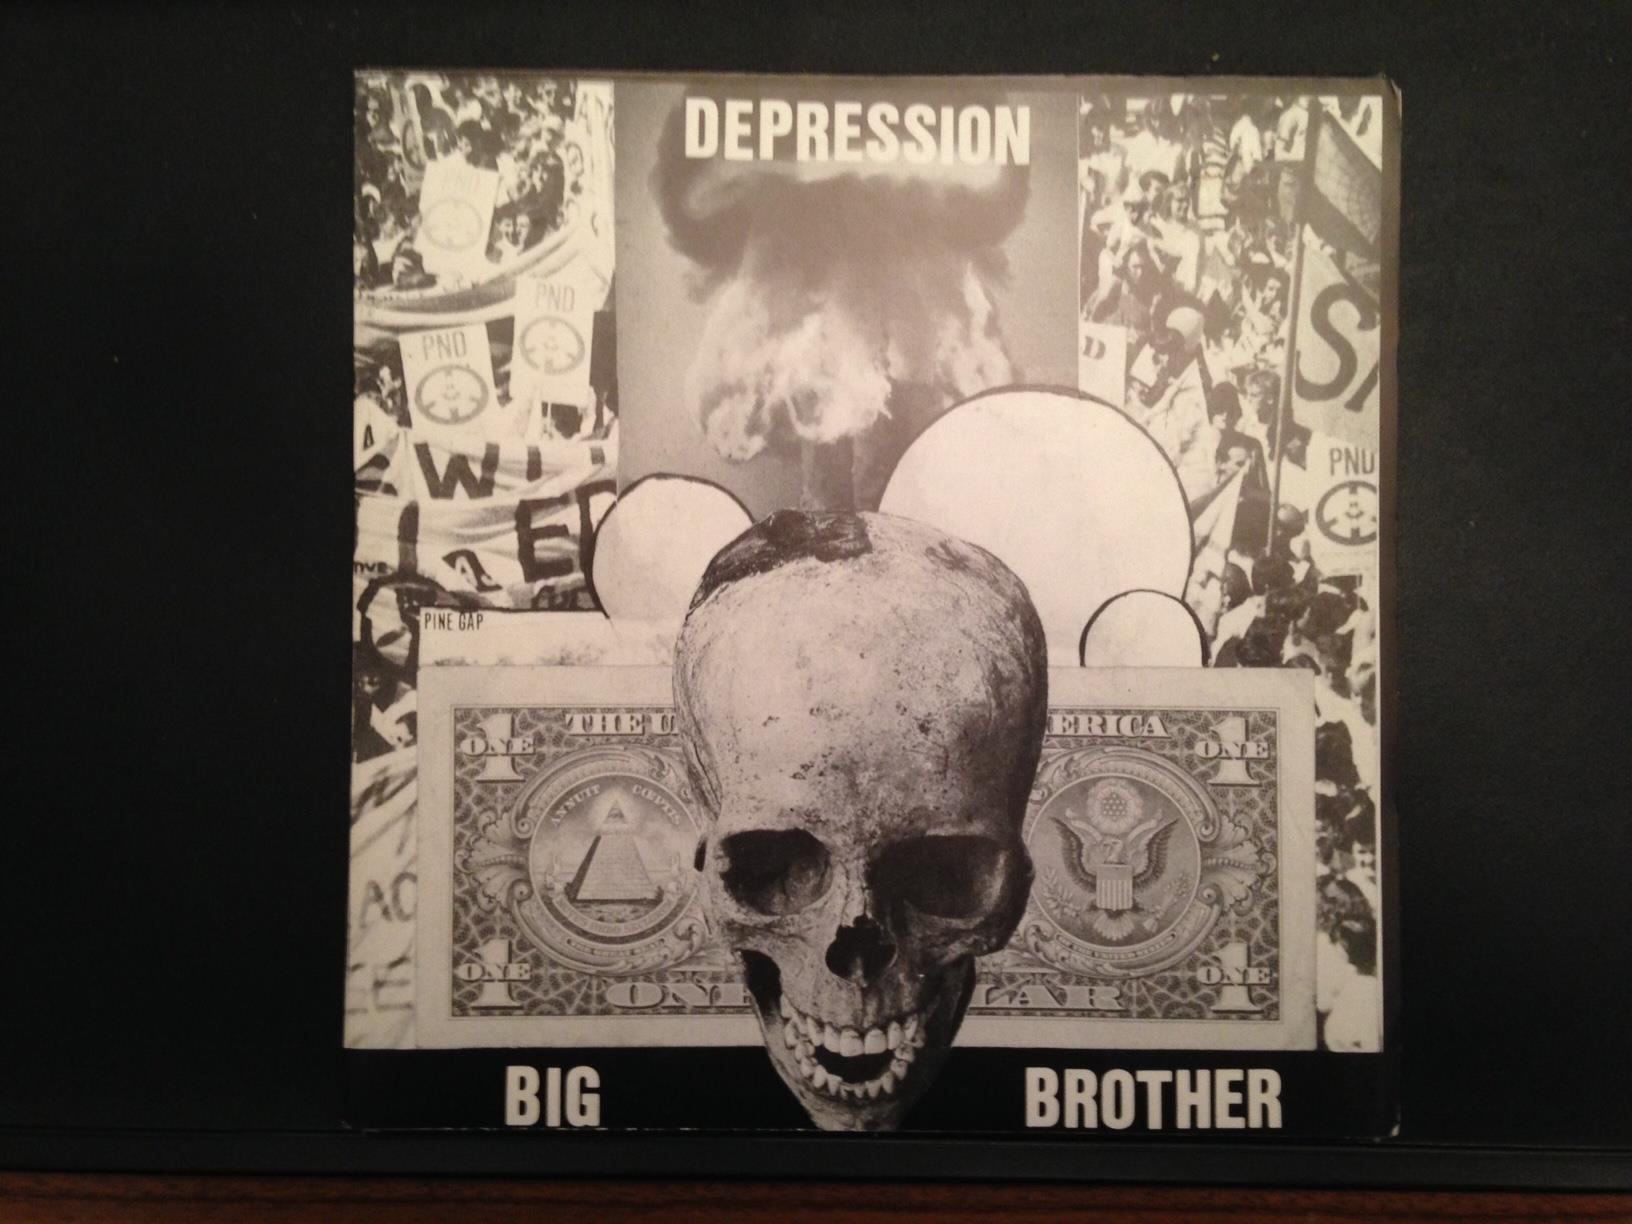 DEPRESSION – Big brother 7″ on Cleopatra Records